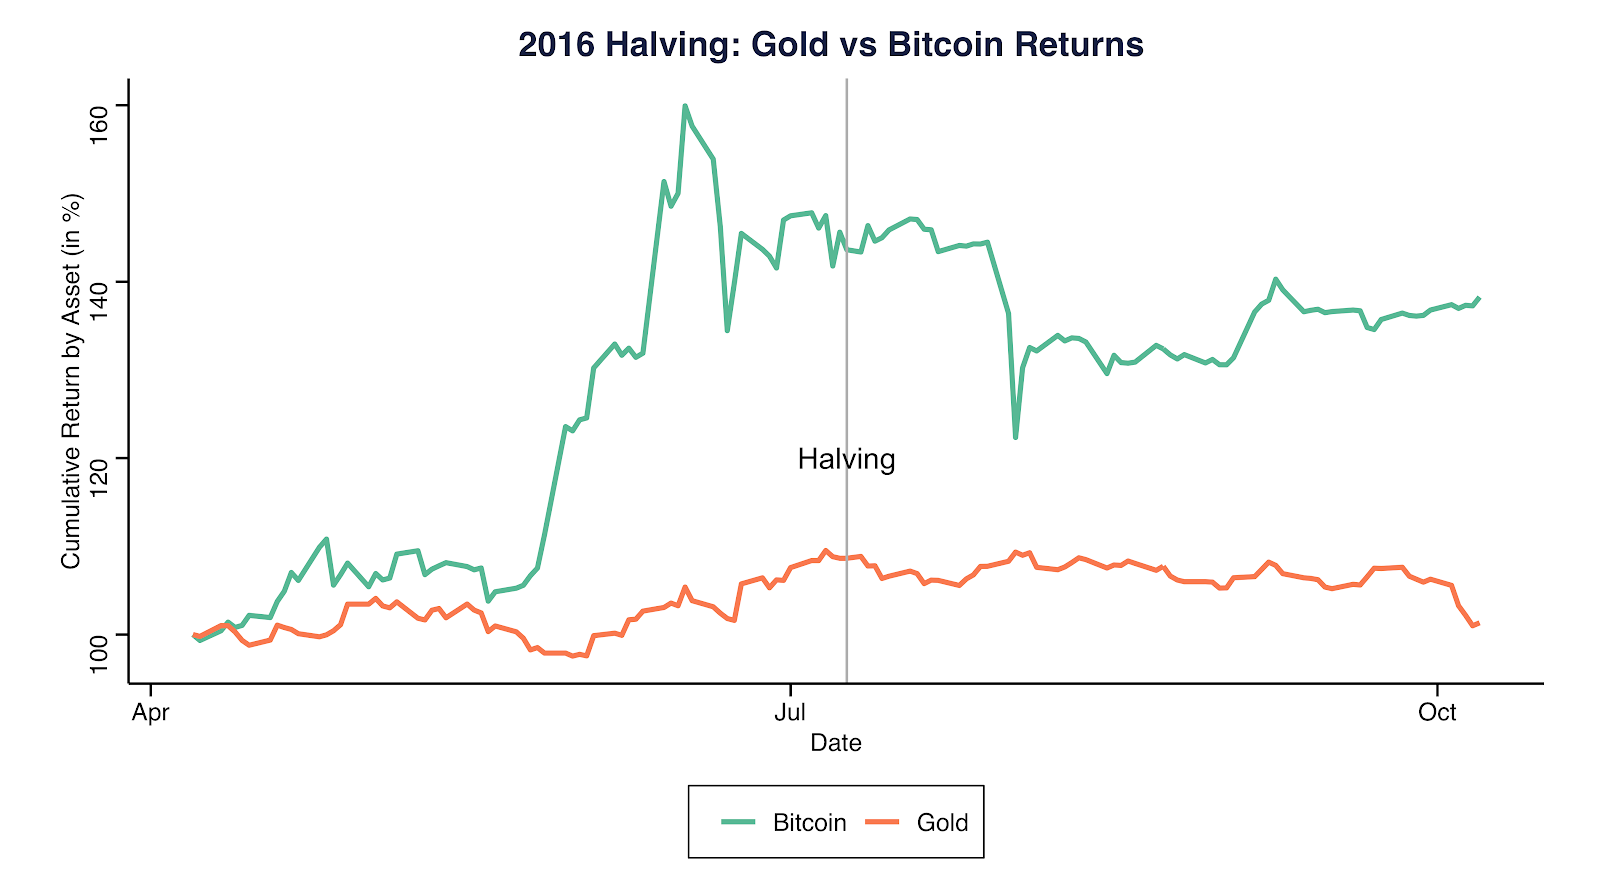 2016 Halving: Gold vs. Bitcoin returns. Source: Coinmetrics.io and Gold.org